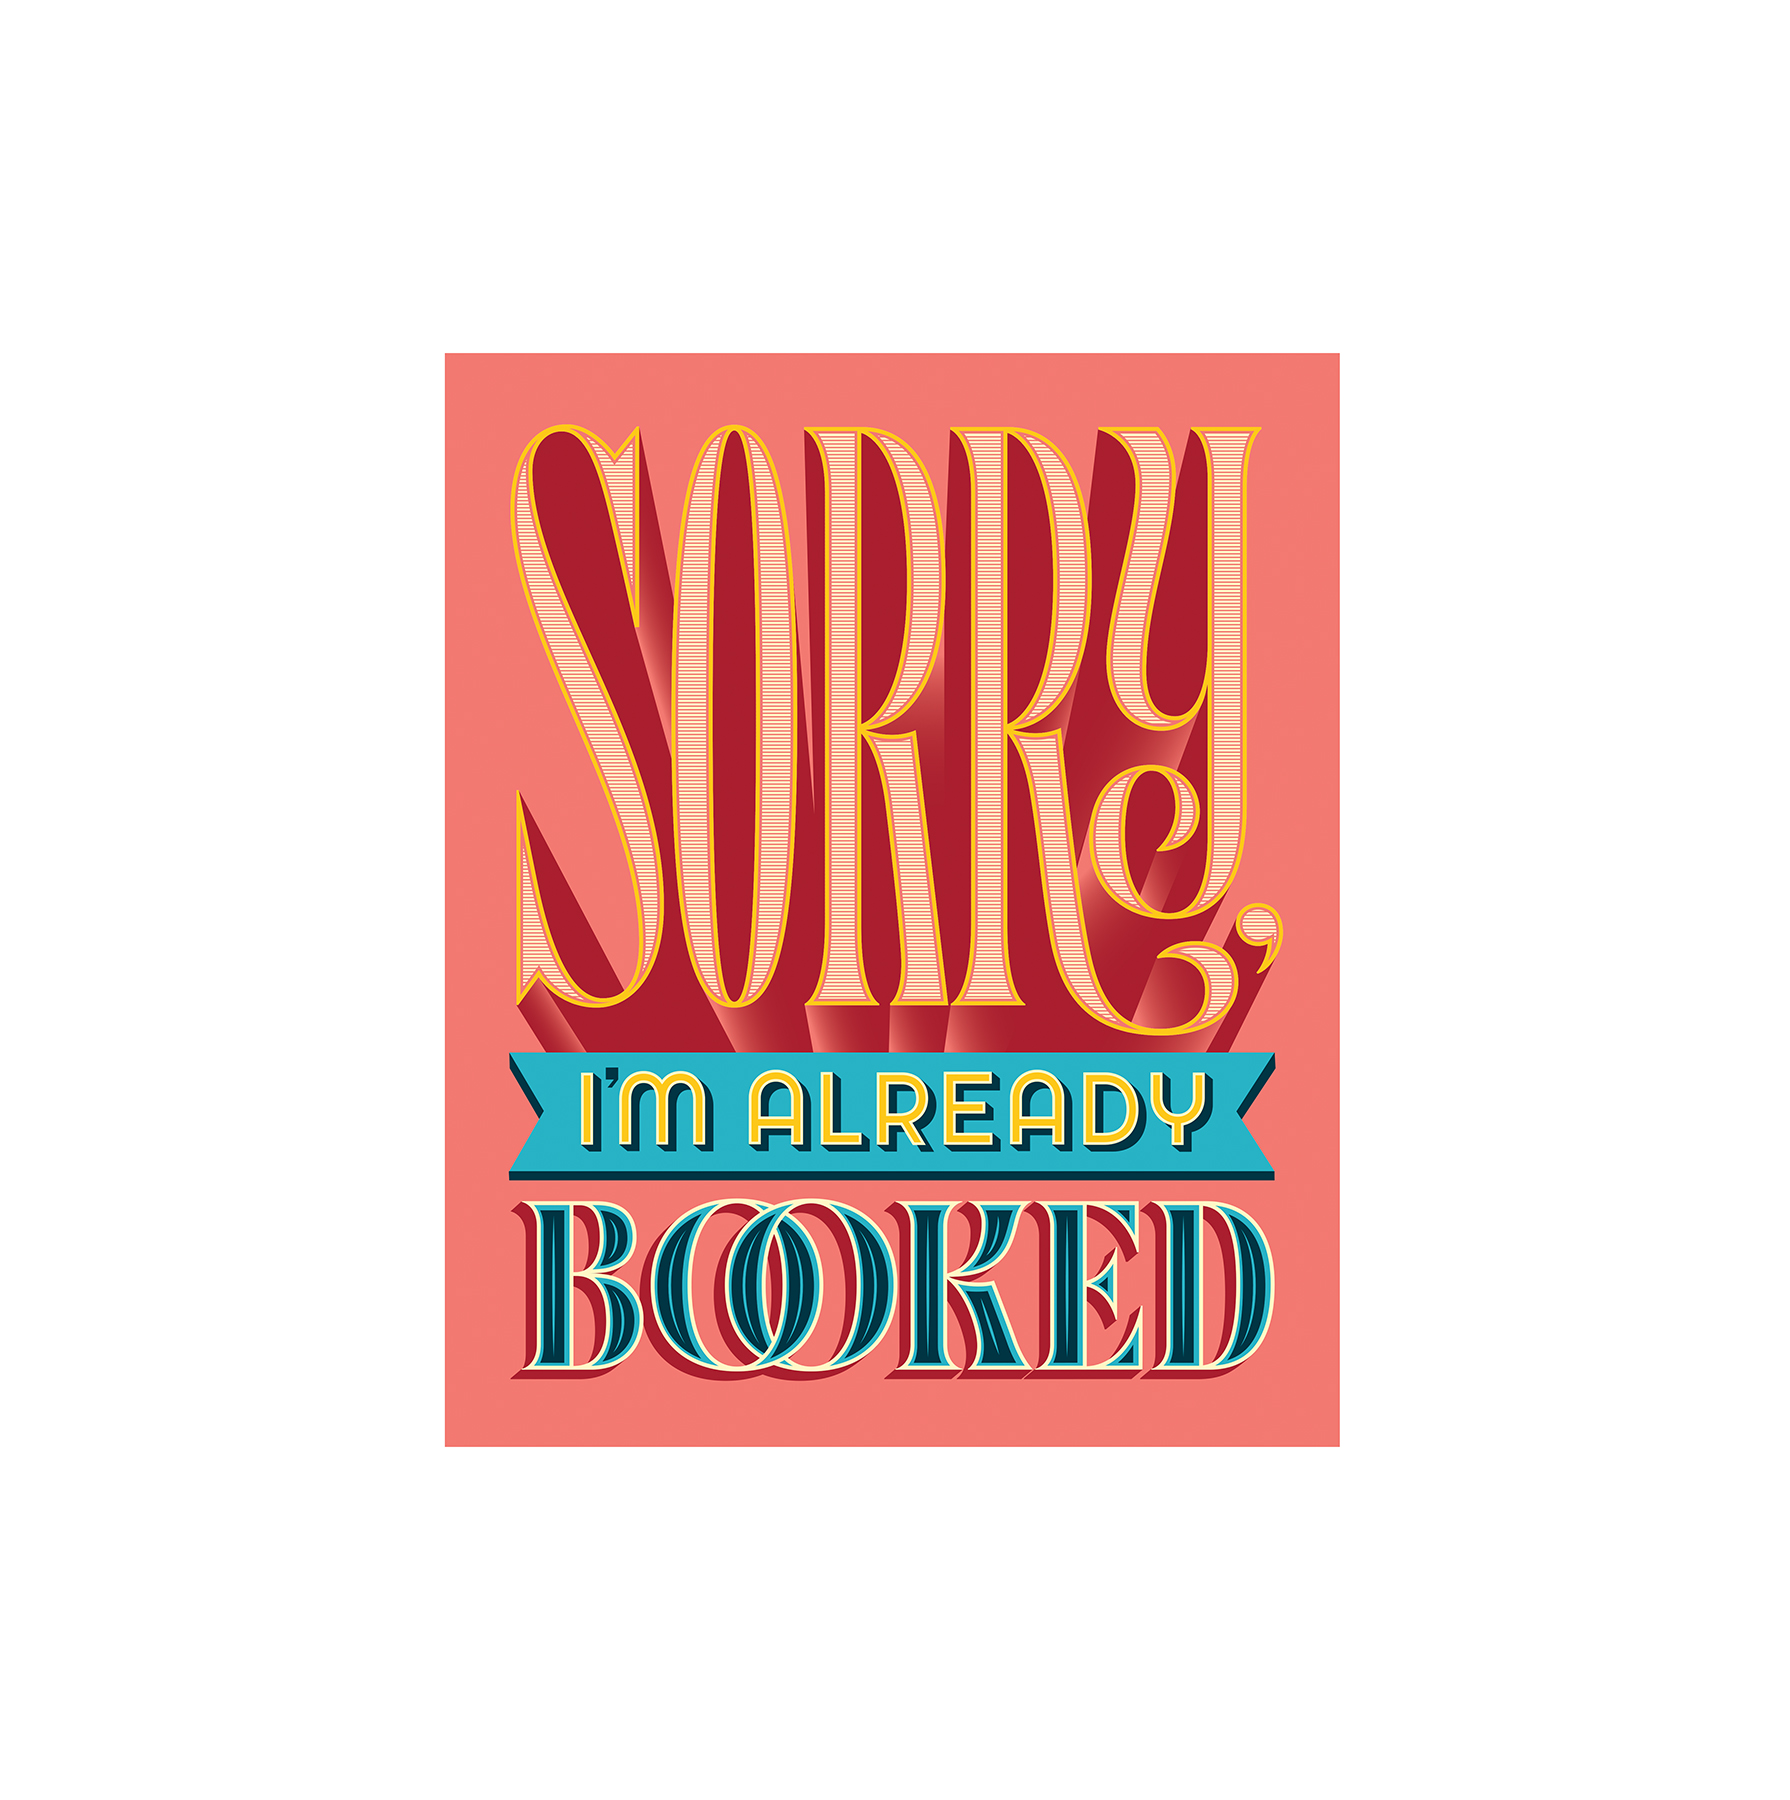 Illustration: Sorry already booked